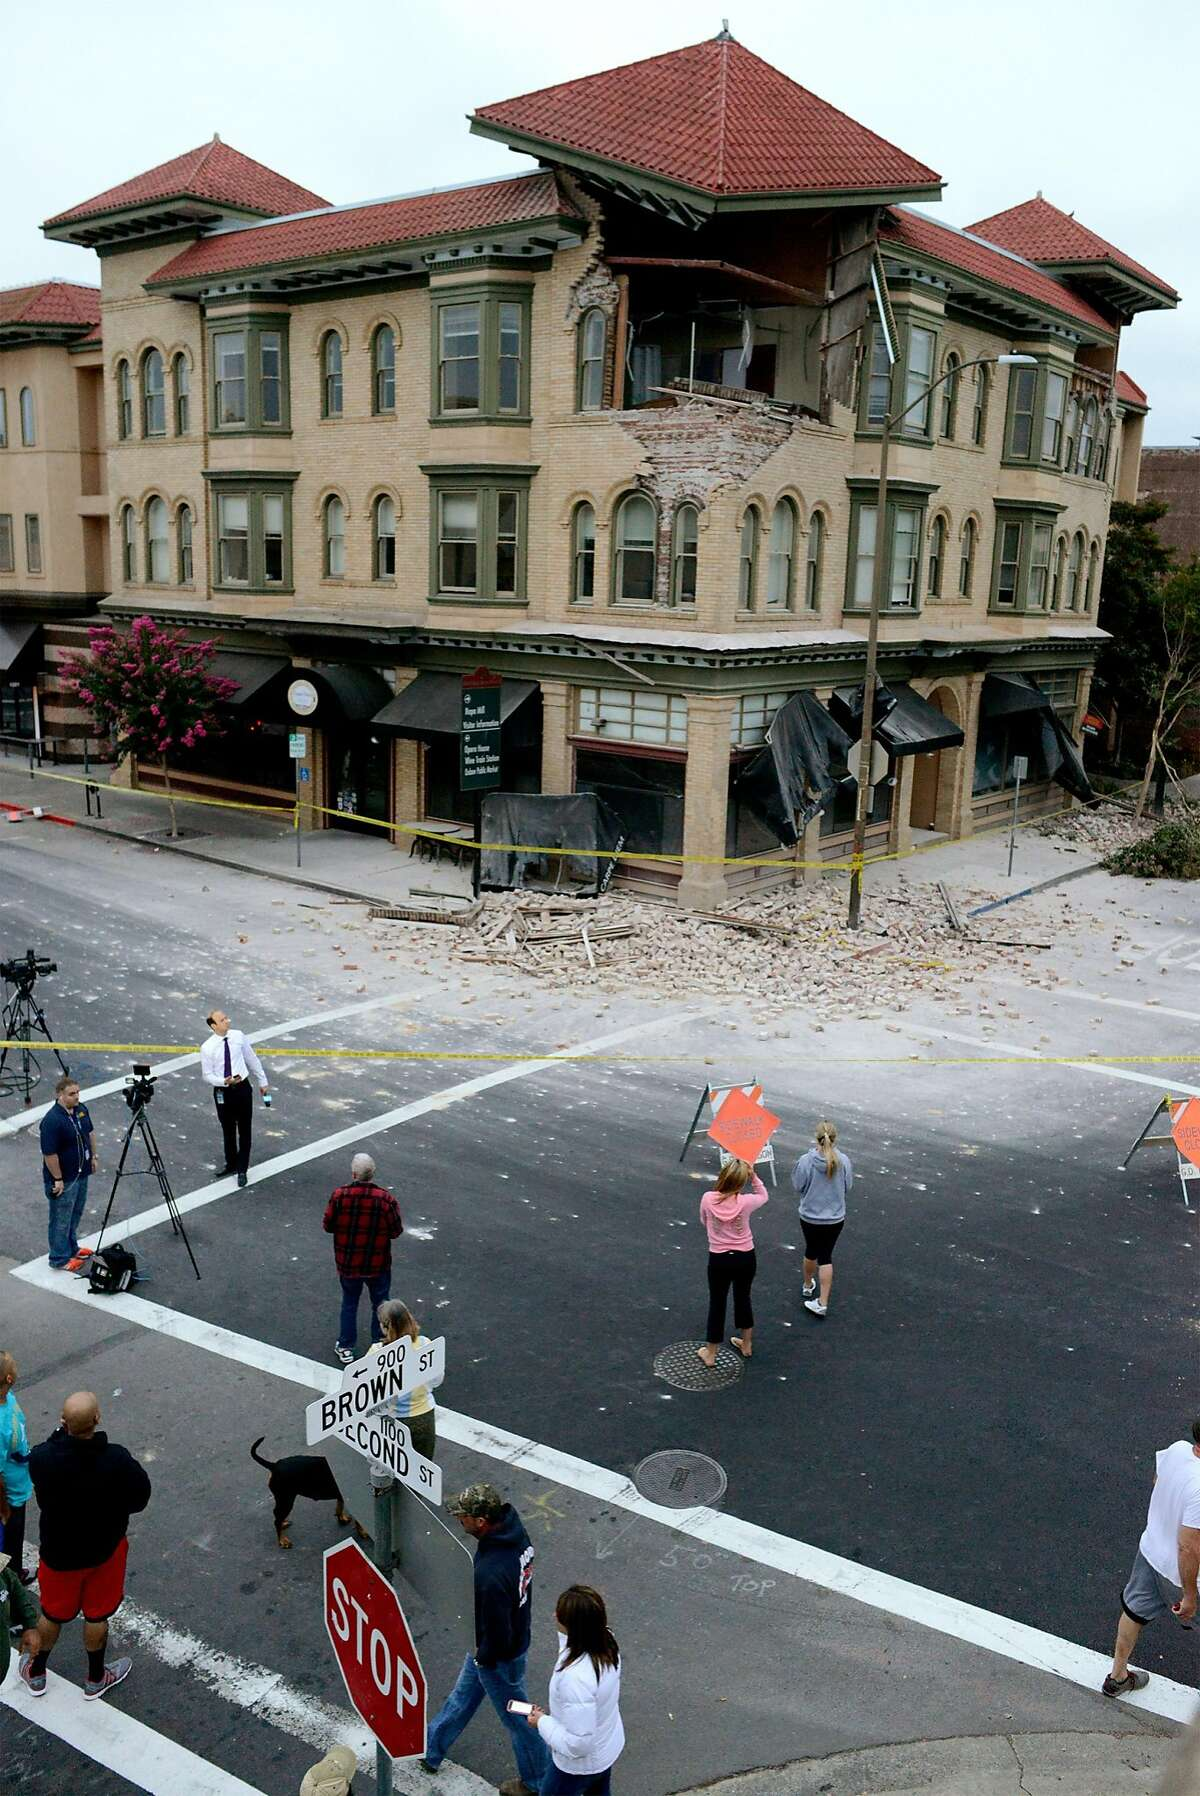 Spectators survey the damage to a building at the corner of Brown Street and Second Street in Napa, California, after an earthquake measuring 6.0 on the Richter scale struck in the early morning of August 24, 2014.